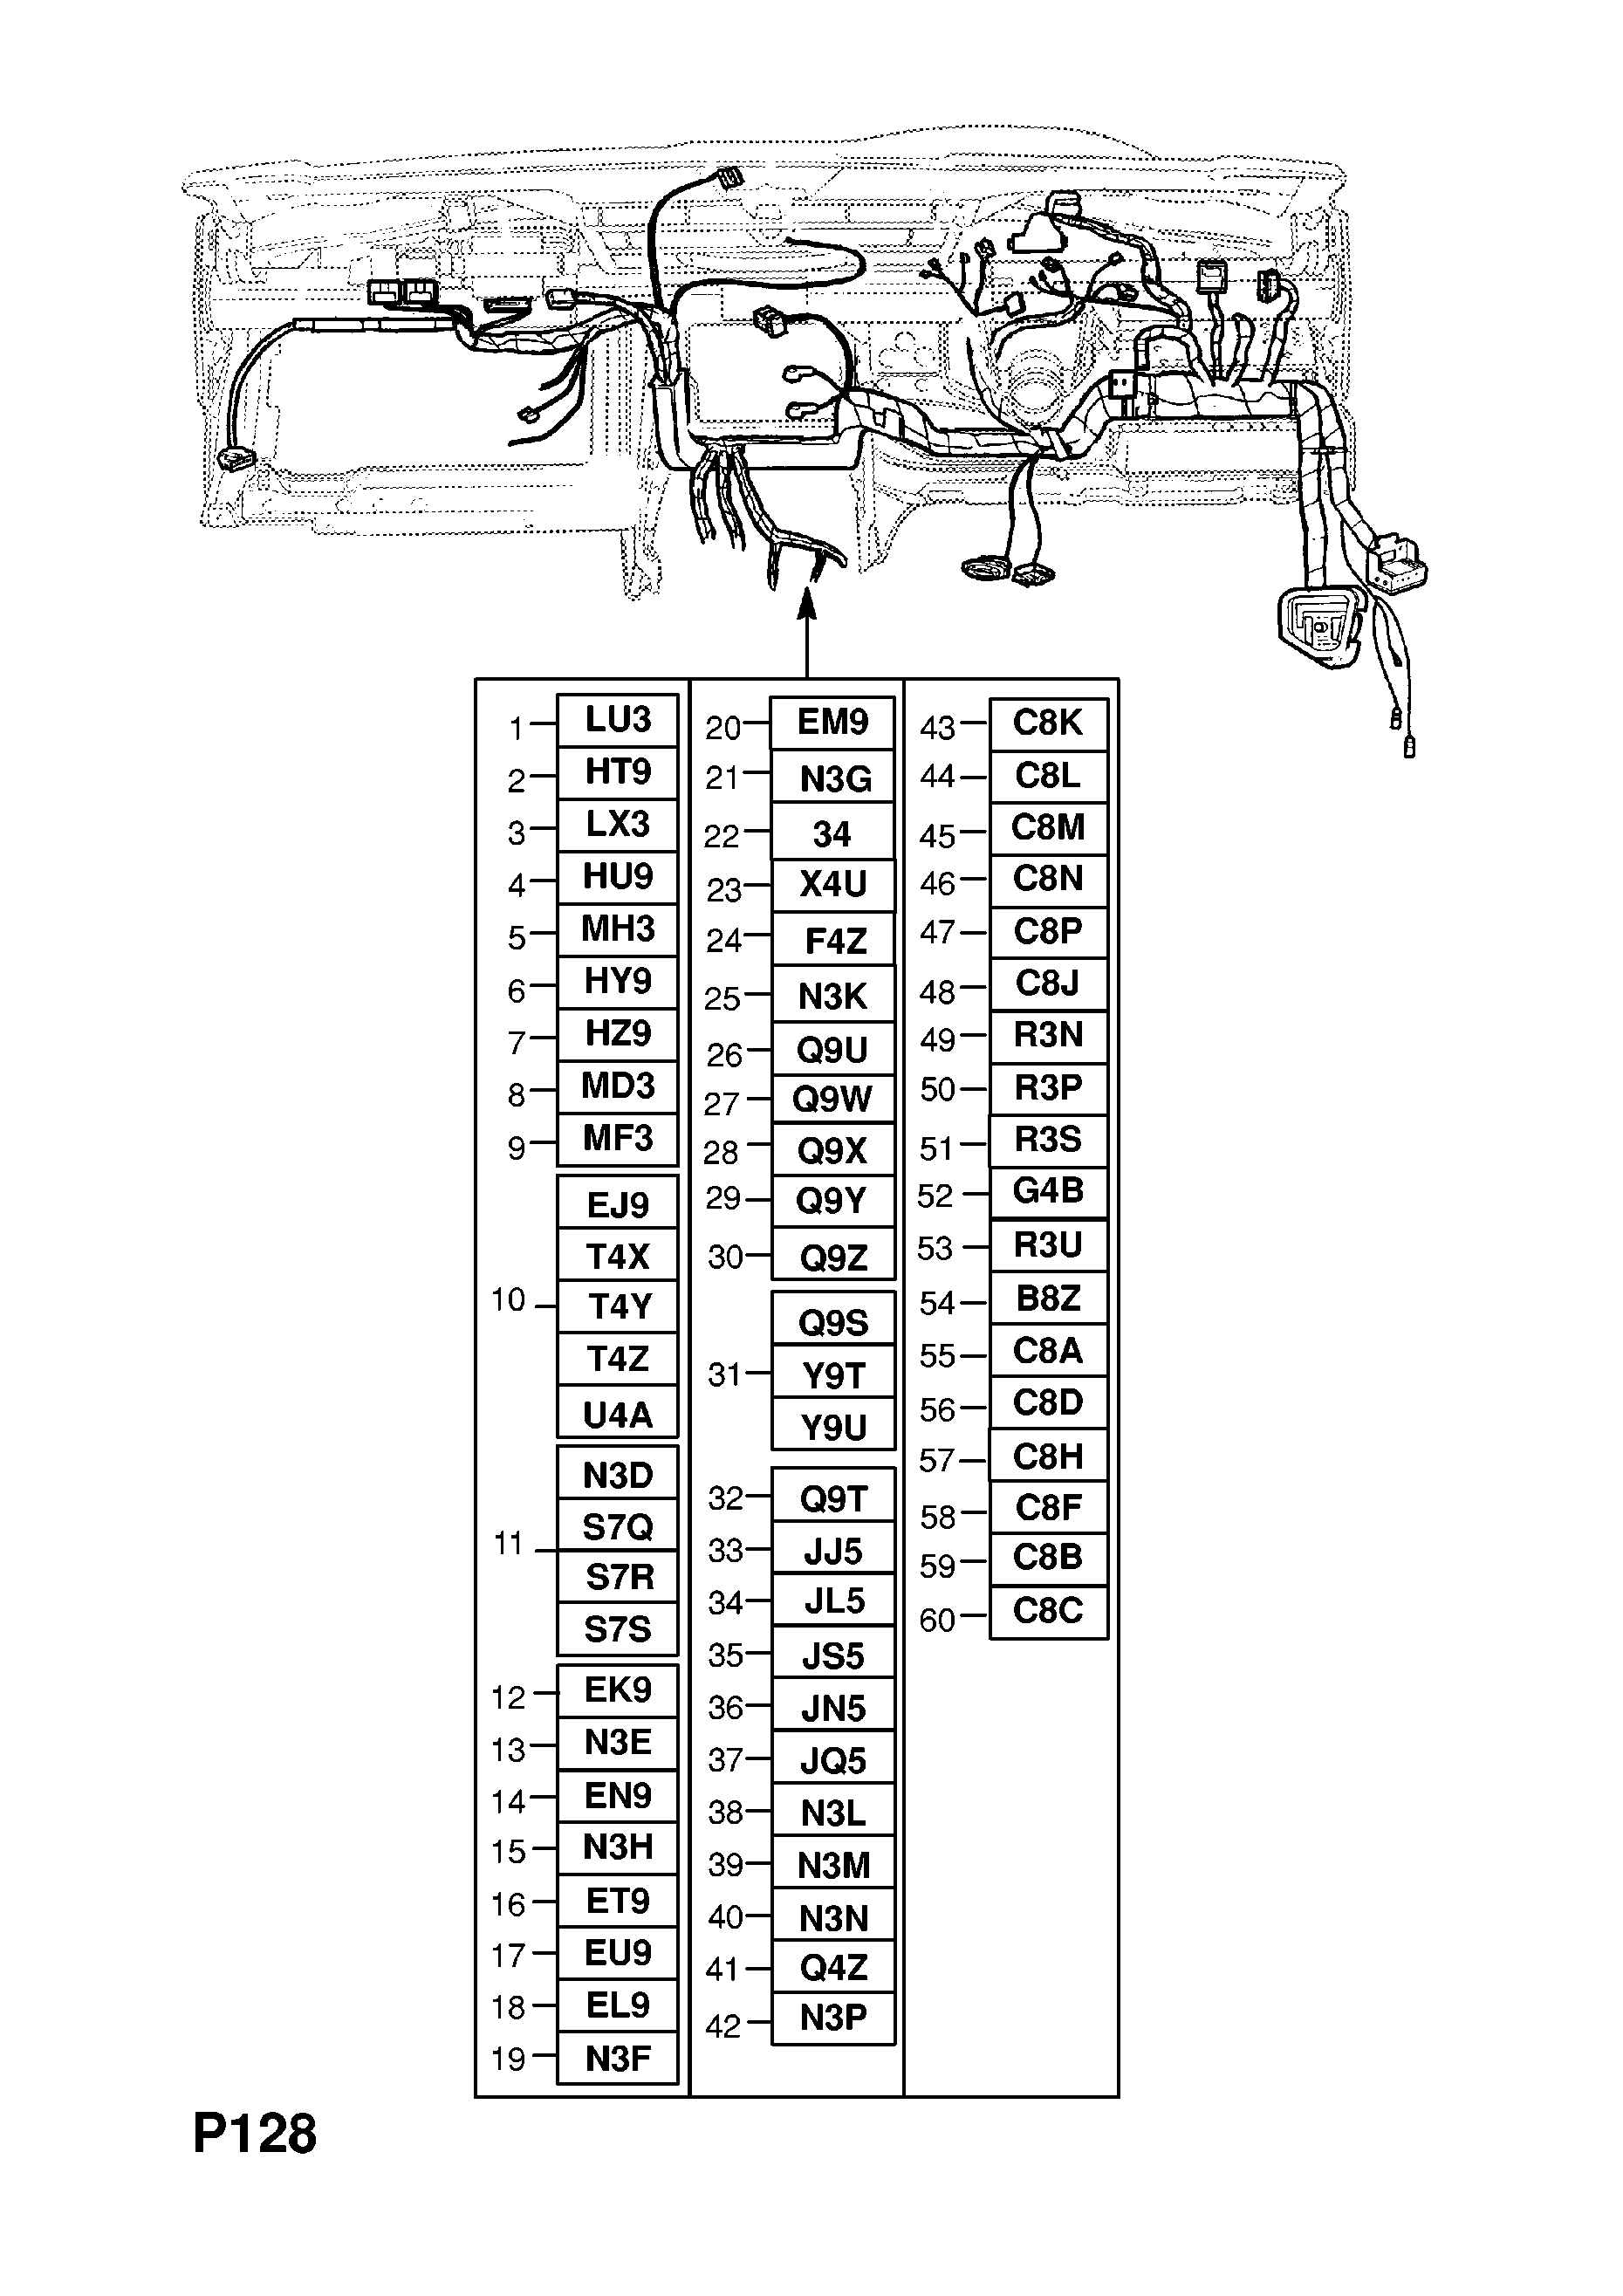 Wiring Diagram Opel Astra G